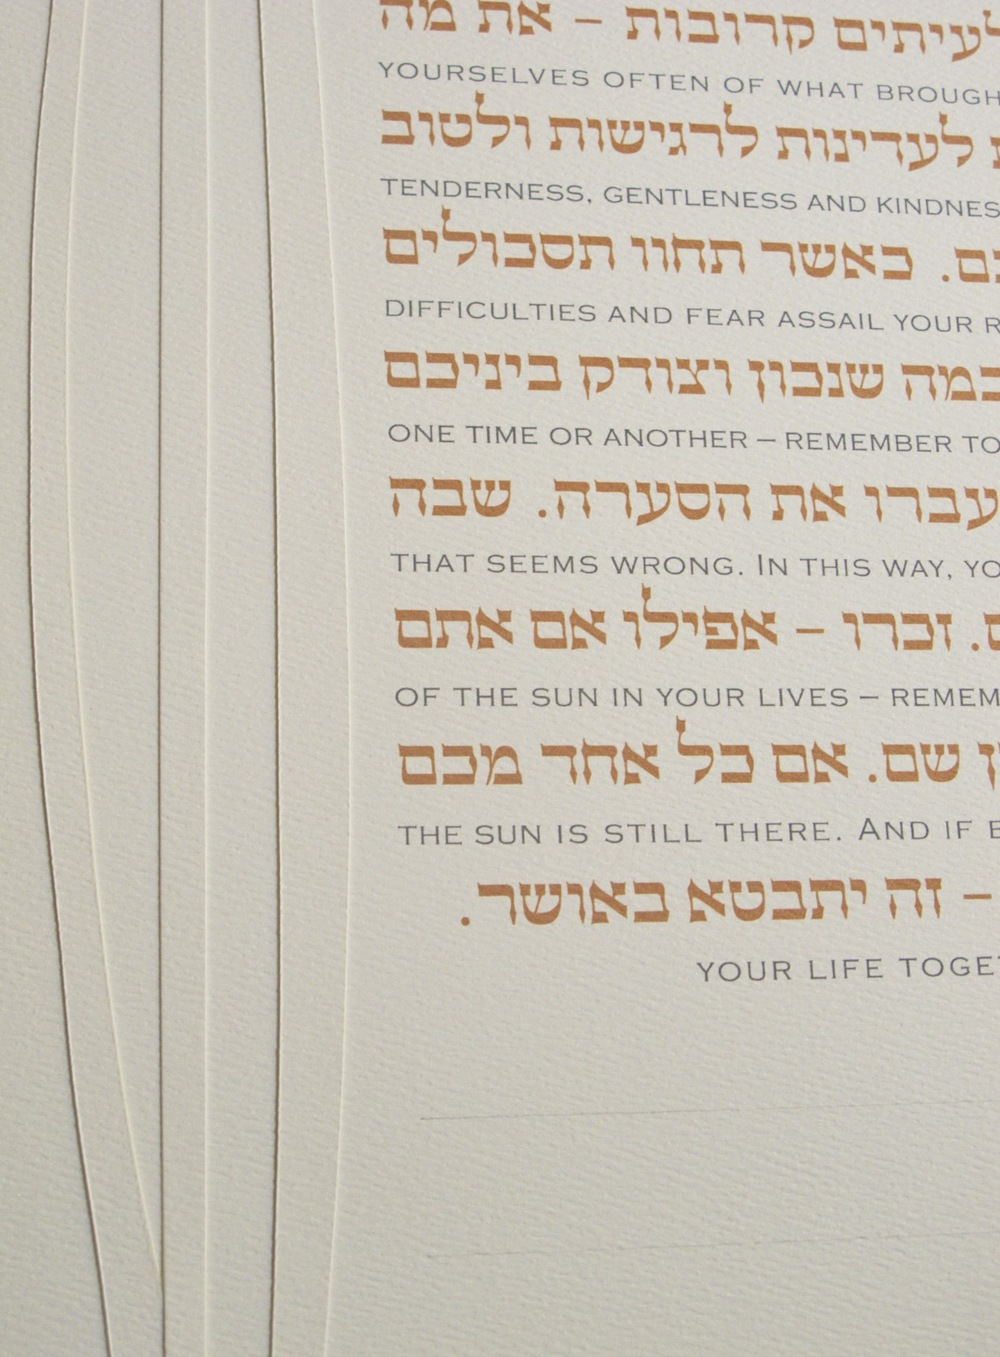 Detail of Orange and Medium Grey Interlinear Text